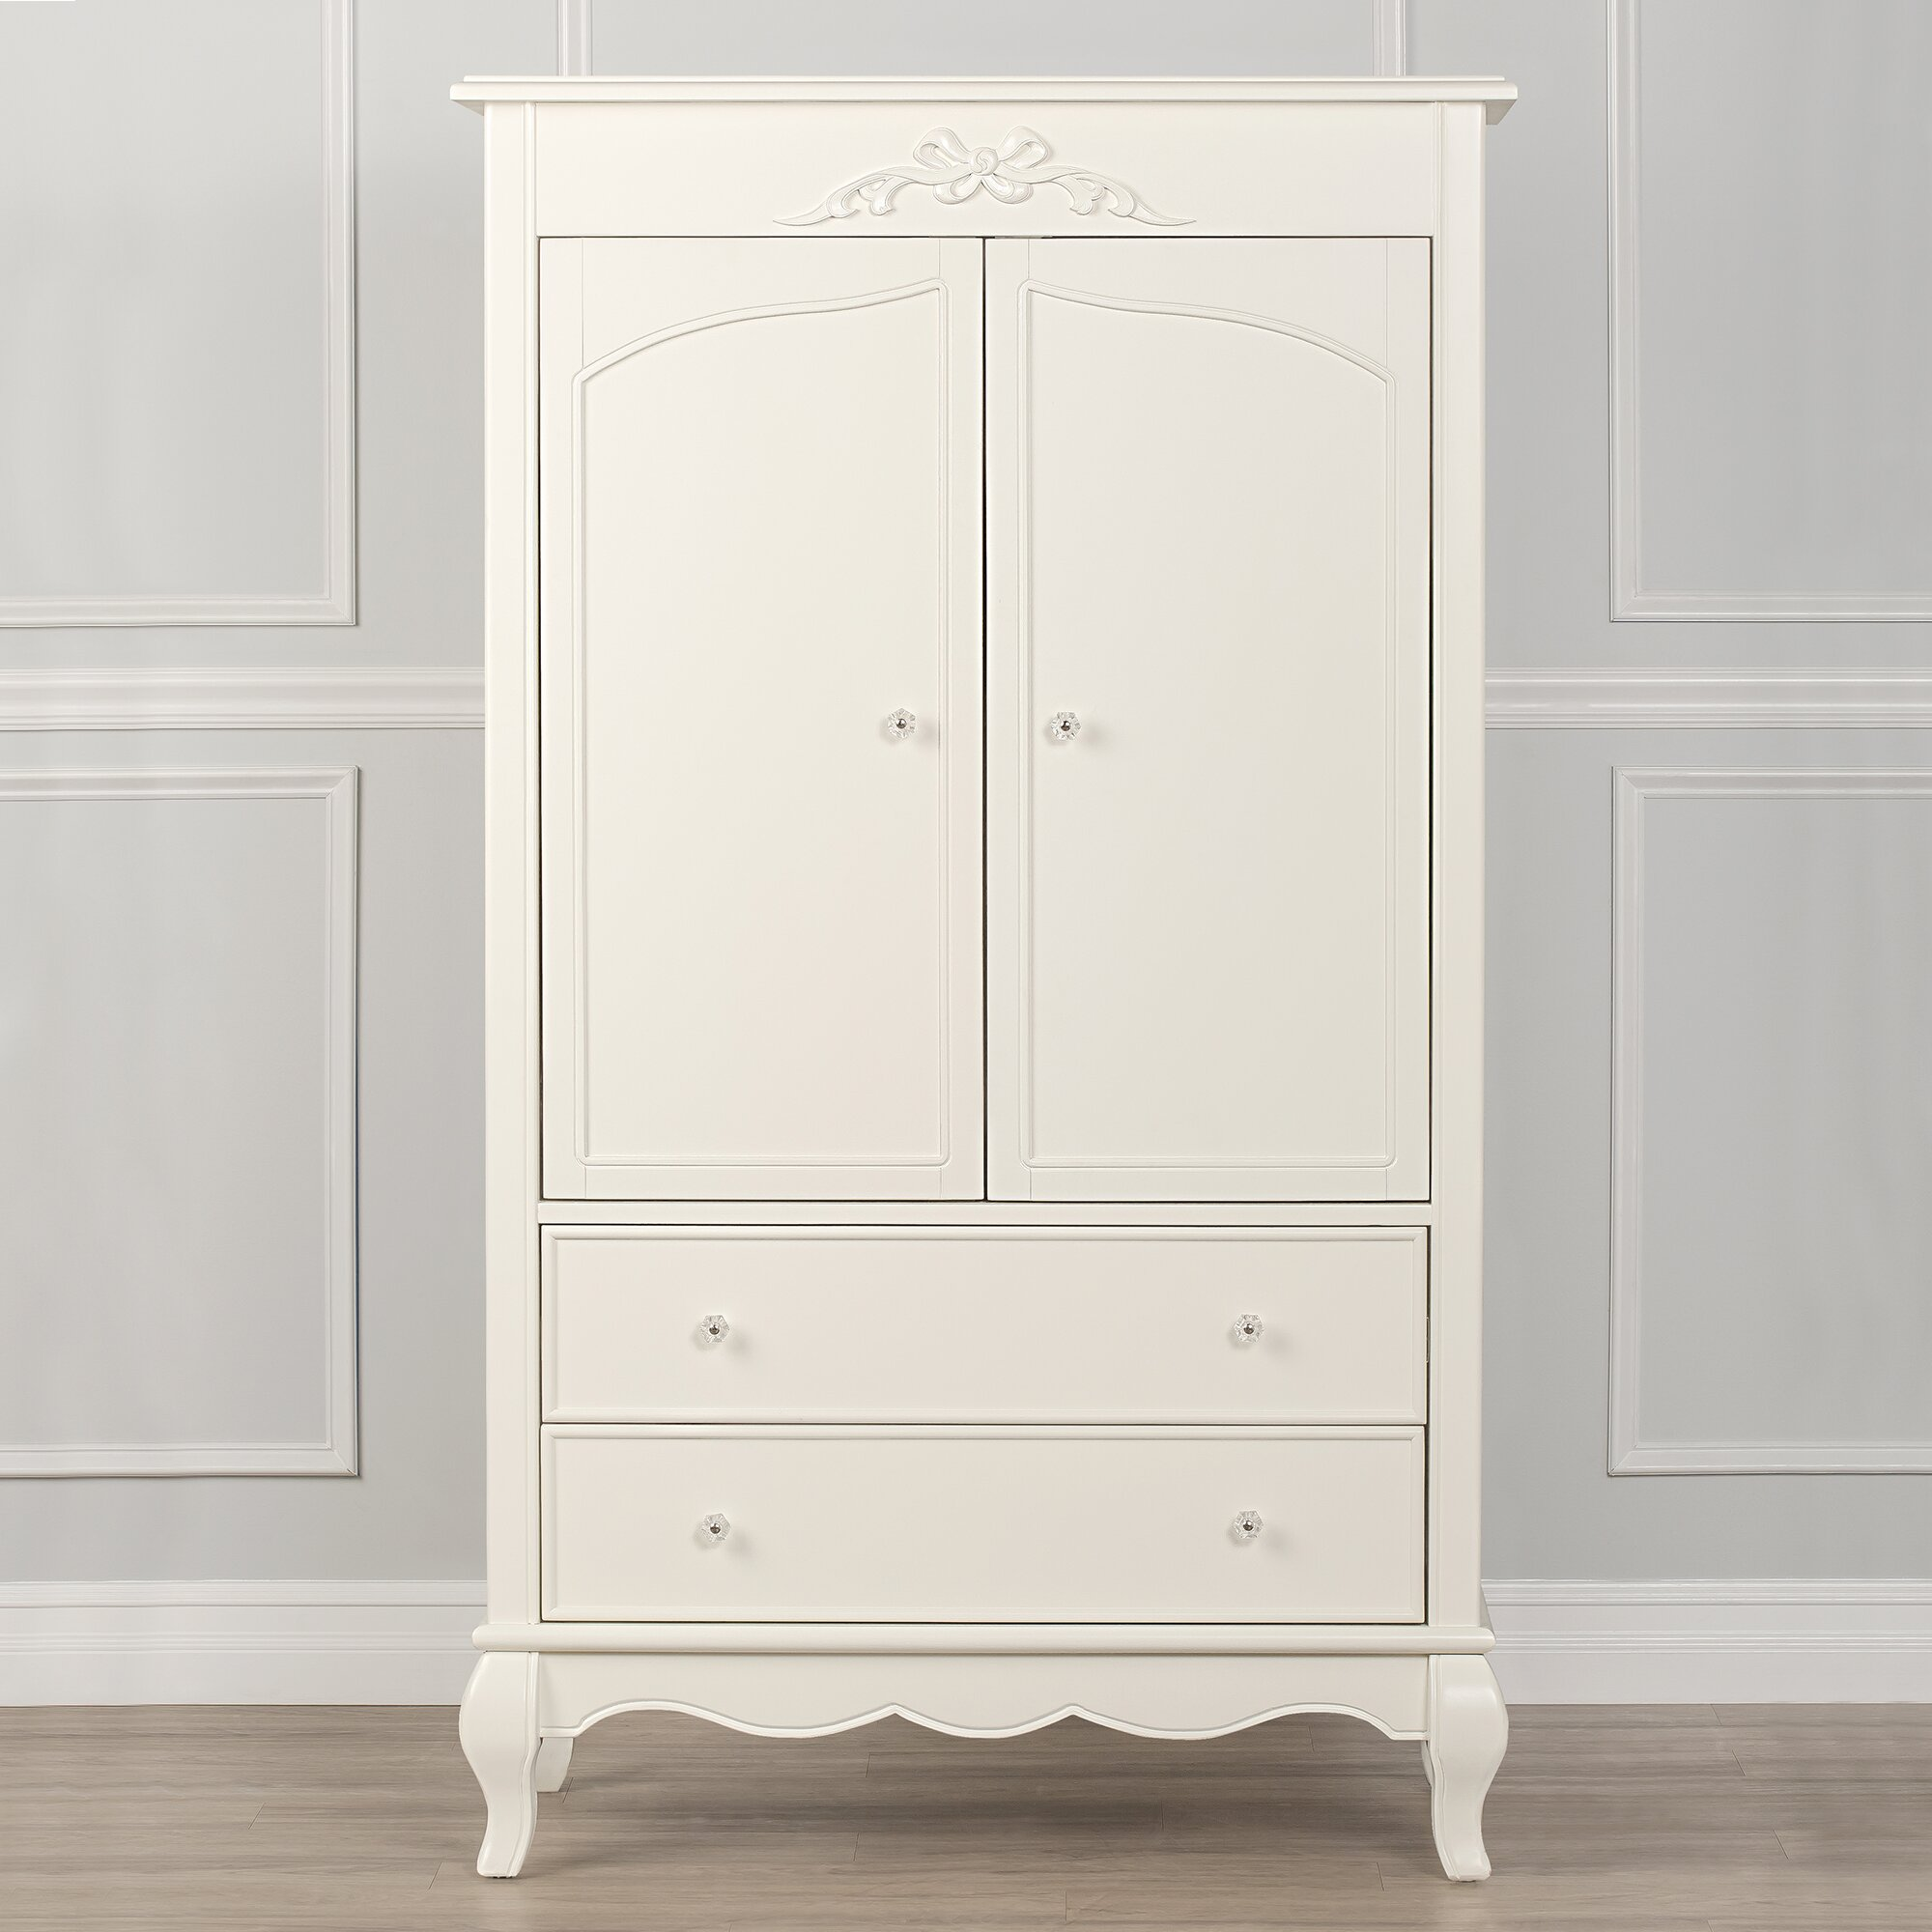 Evolur aurora armoire reviews wayfair for Laci kitchen set